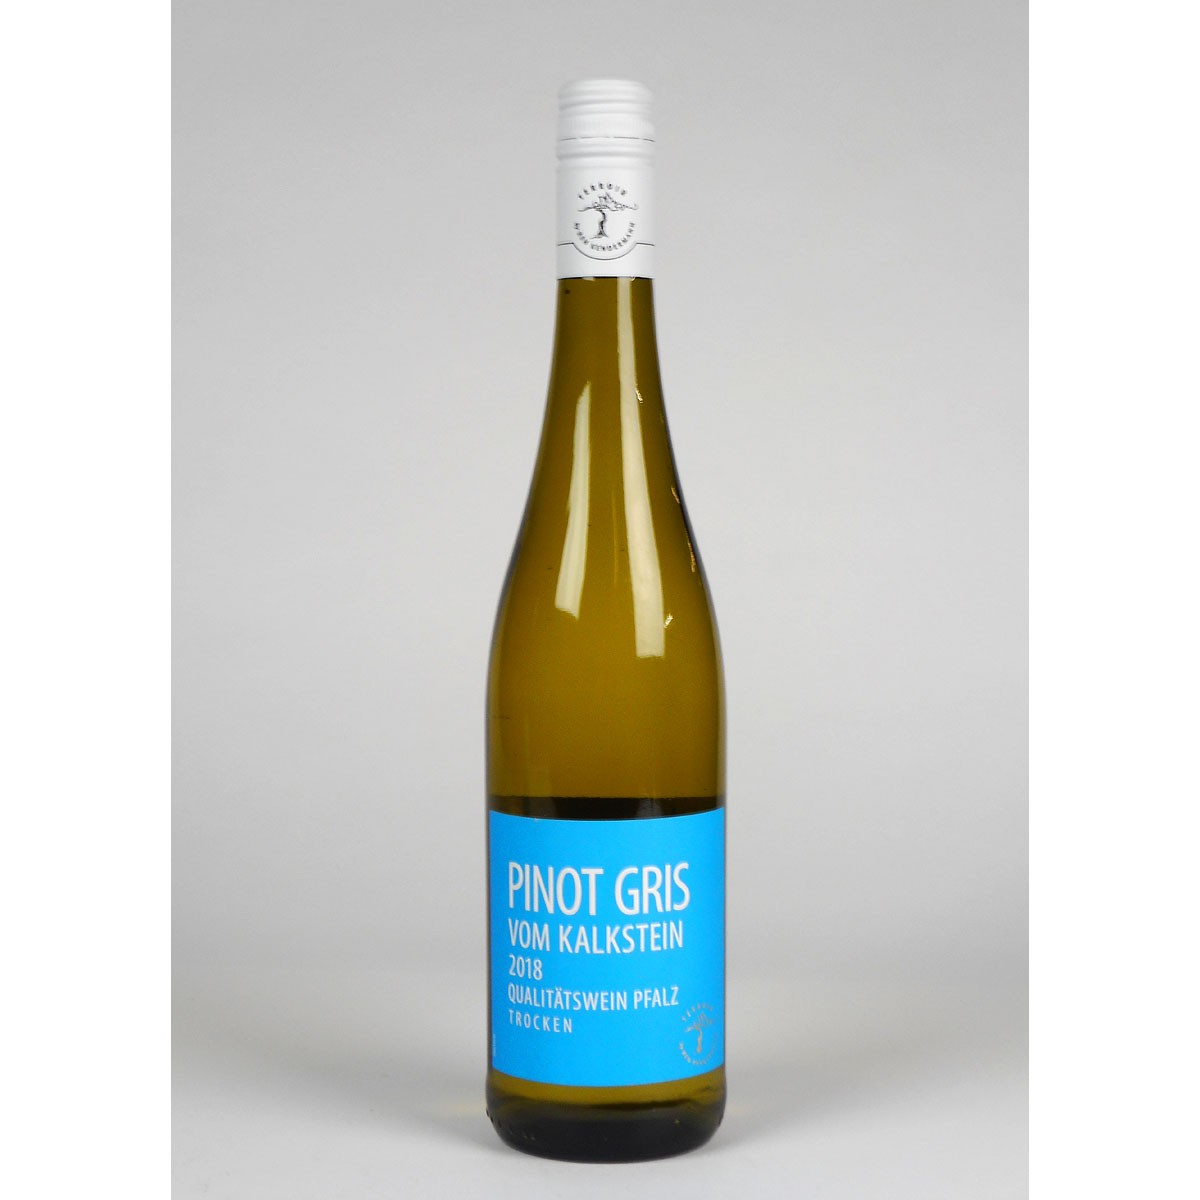 Pfalz: Pinot Gris vom Kalkstein 2018 - single bottle